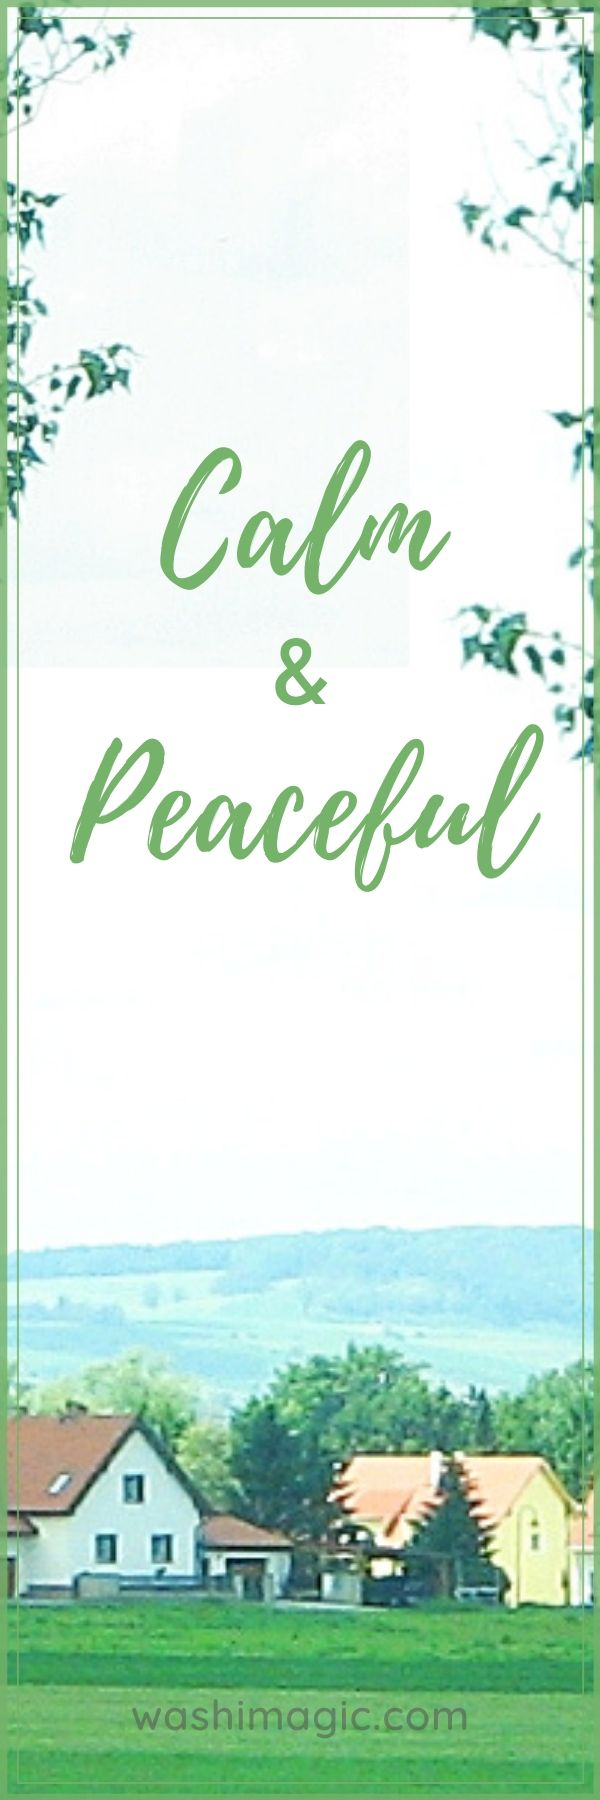 Freebies bookmark | Calm & peaceful quote | Encouraging bookmark | Inspirational bookmark | Free resources library | Washimagic.com